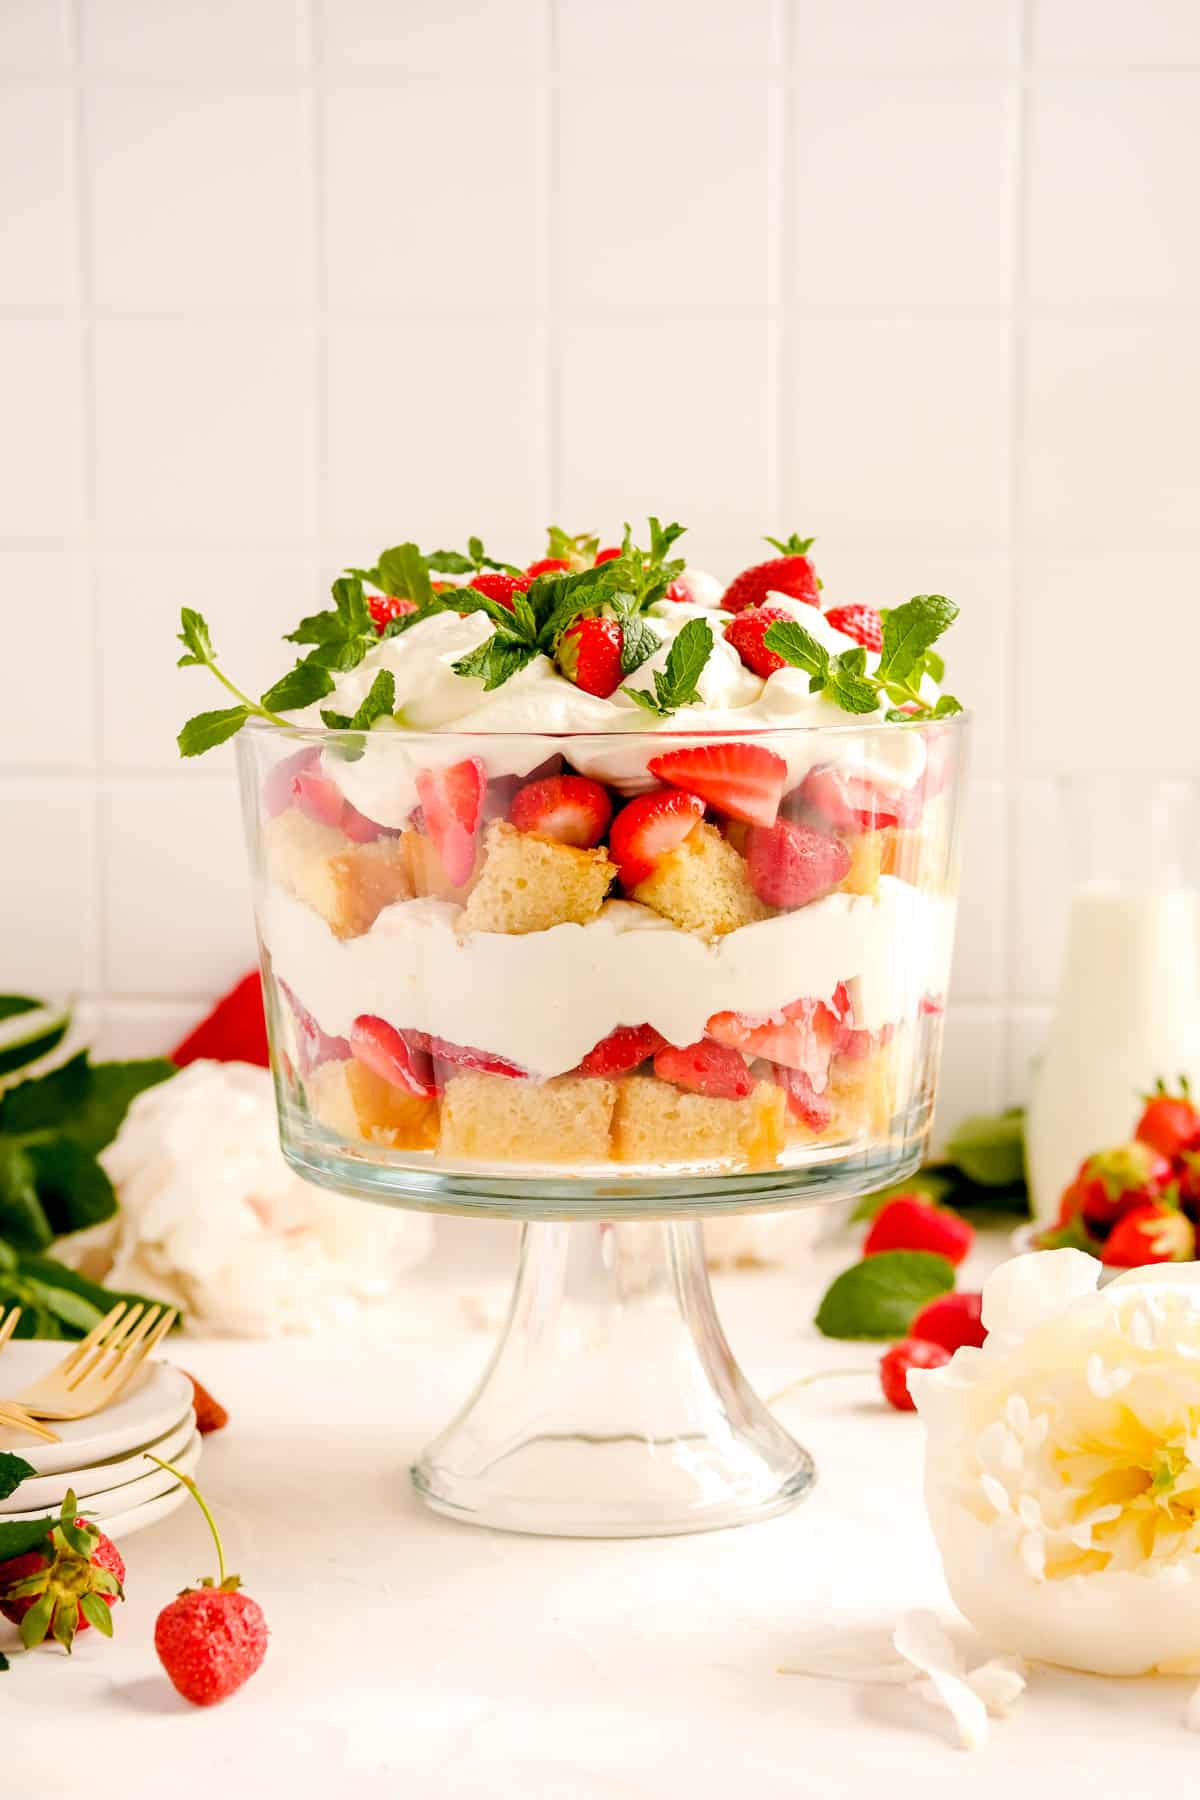 a strawberry trifle from the side showing the layers with plates, forks and flowers on a table.